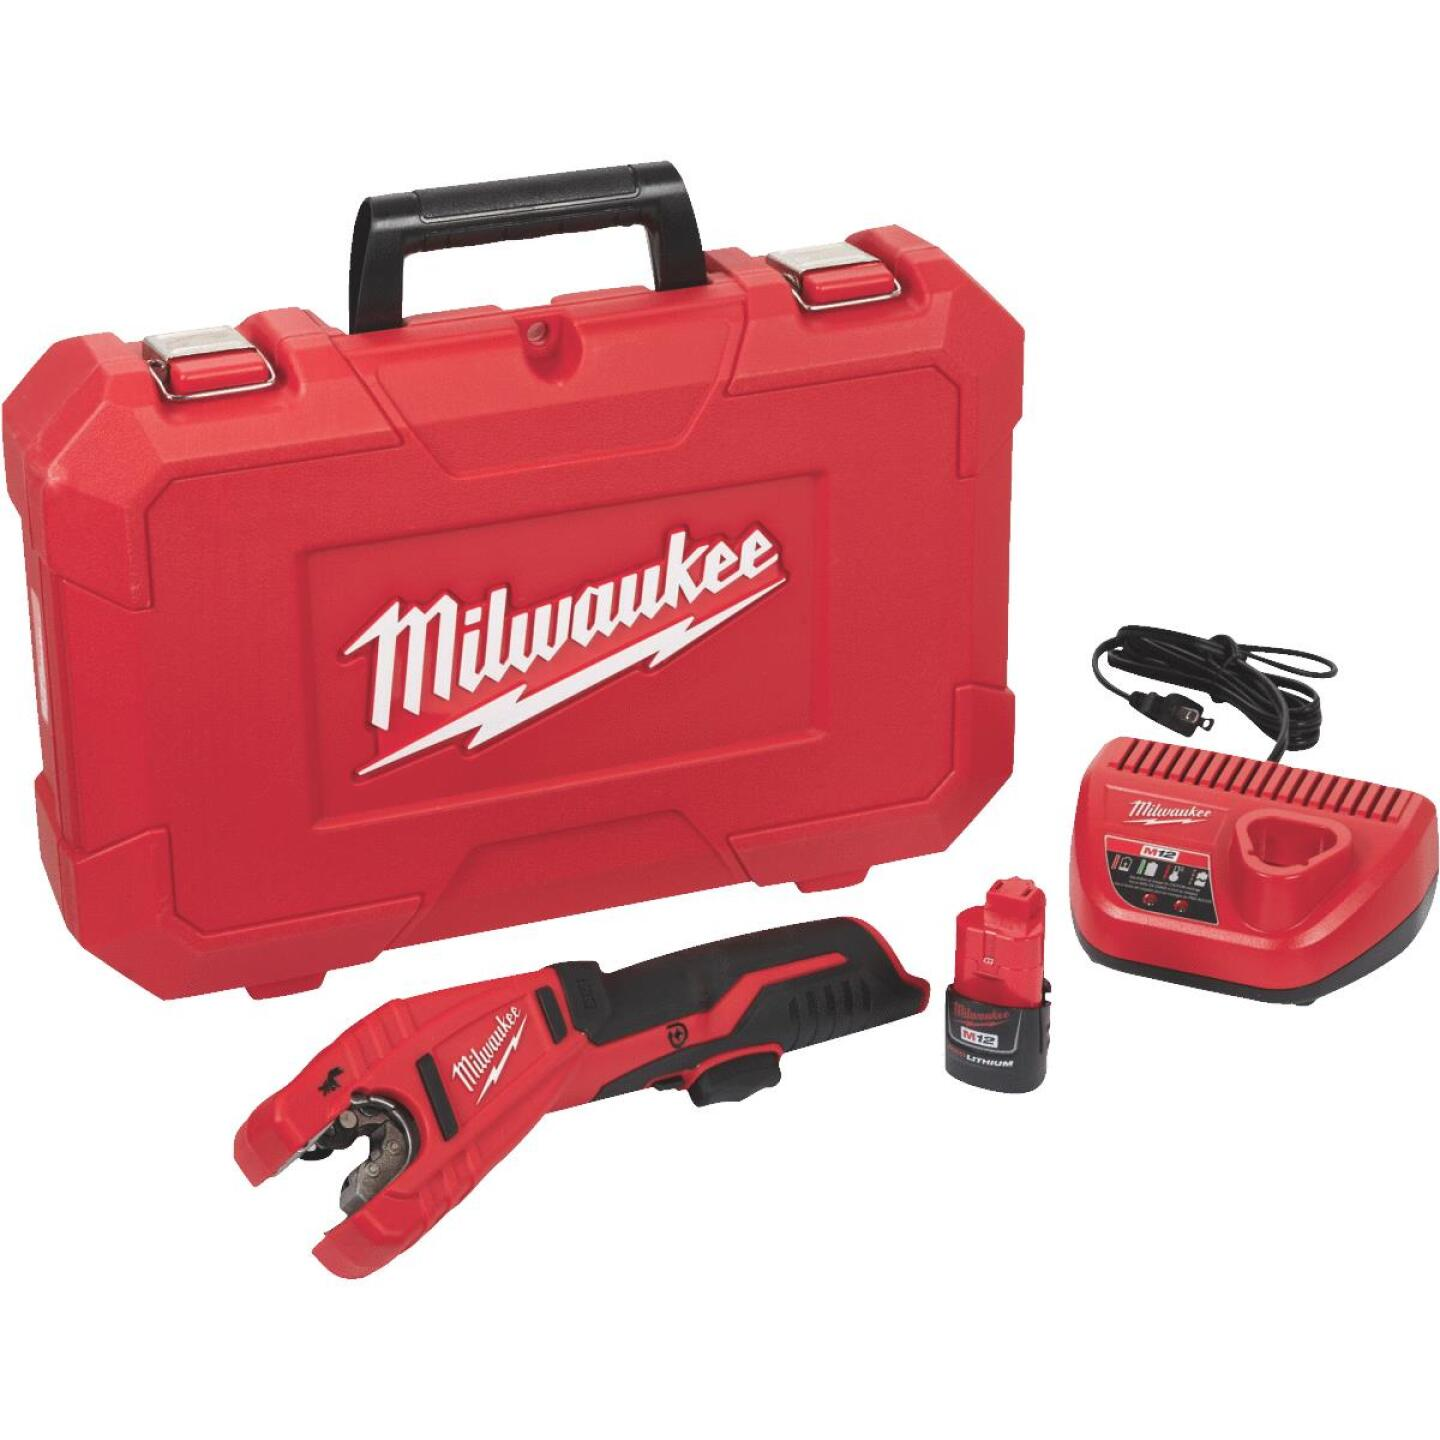 Milwaukee M12 12 Volt Lithium-Ion Copper Cordless Pipe Cutter Kit Image 1